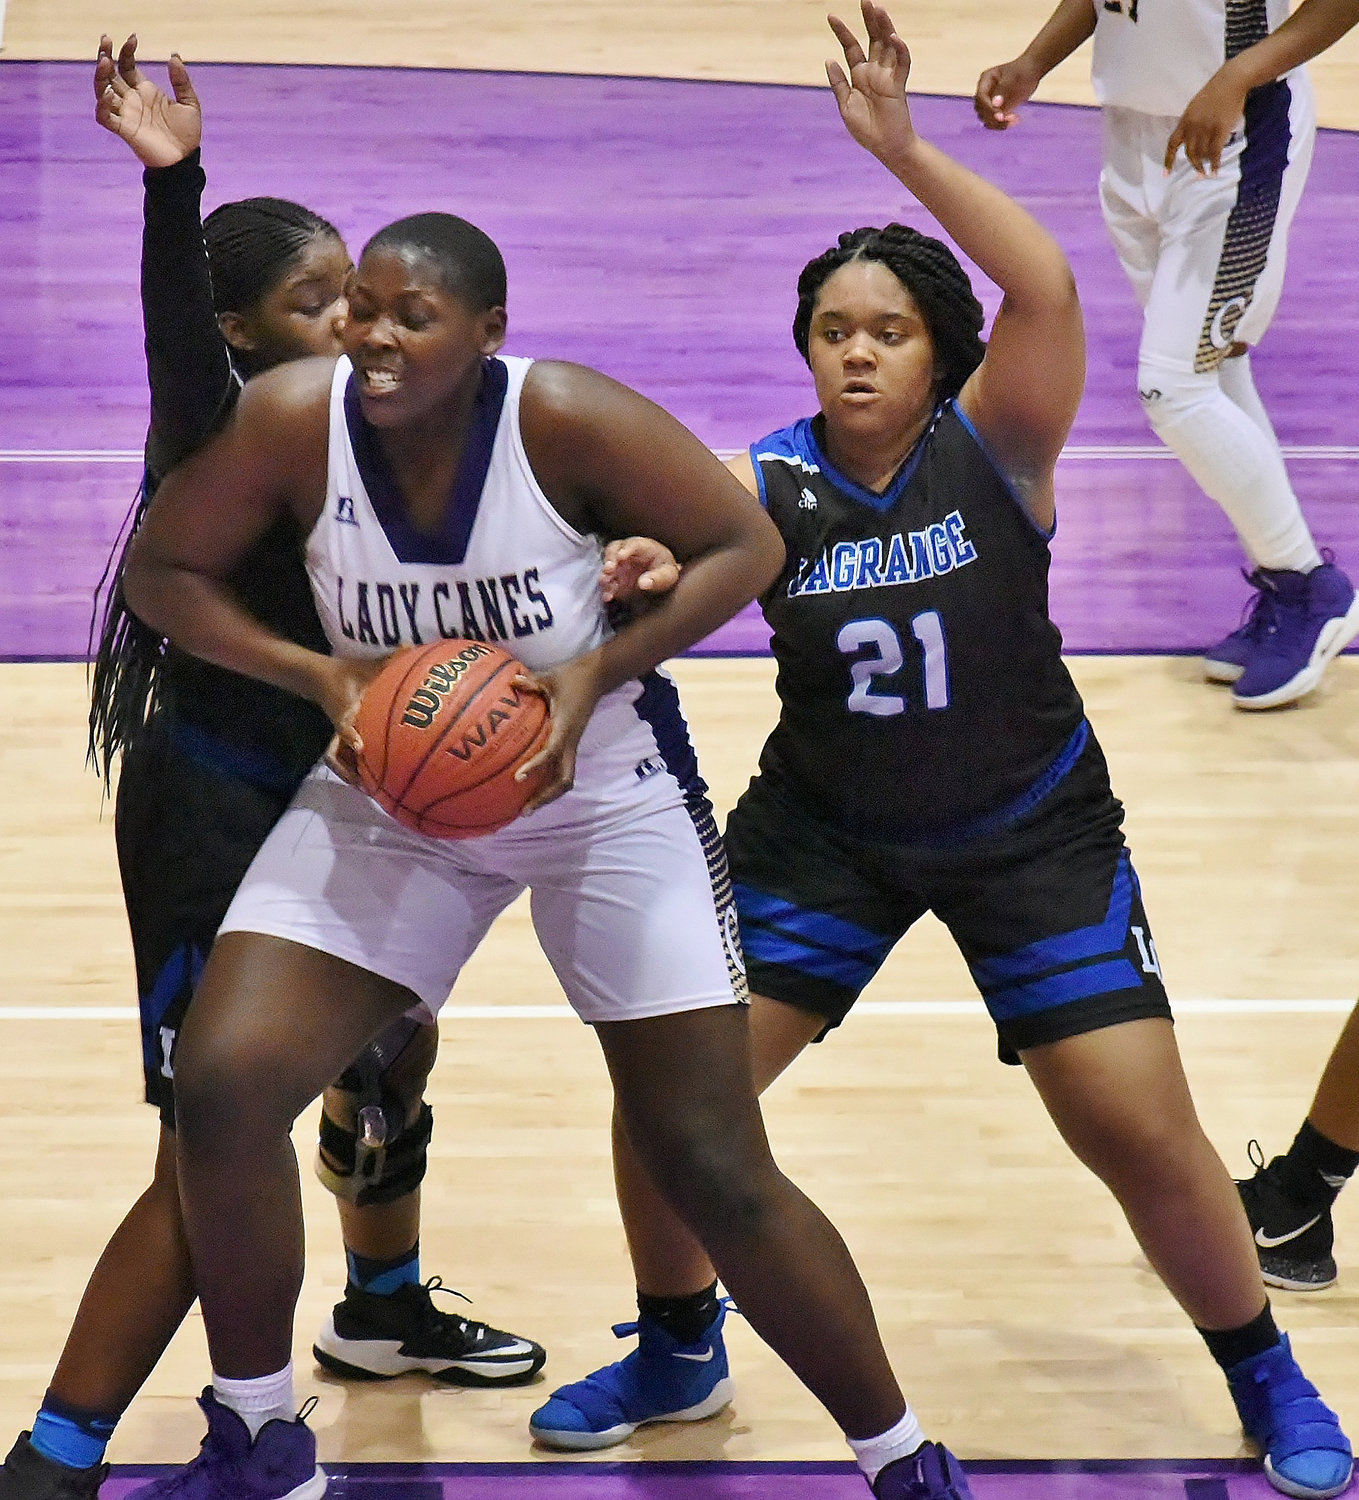 Cartersville senior London Shaw fights inside against LaGrange during Tuesday's home game at The Storm Center. Shaw posted a double-double with 16 points and 10 rebounds to help boost the Canes to a 50-44 victory.